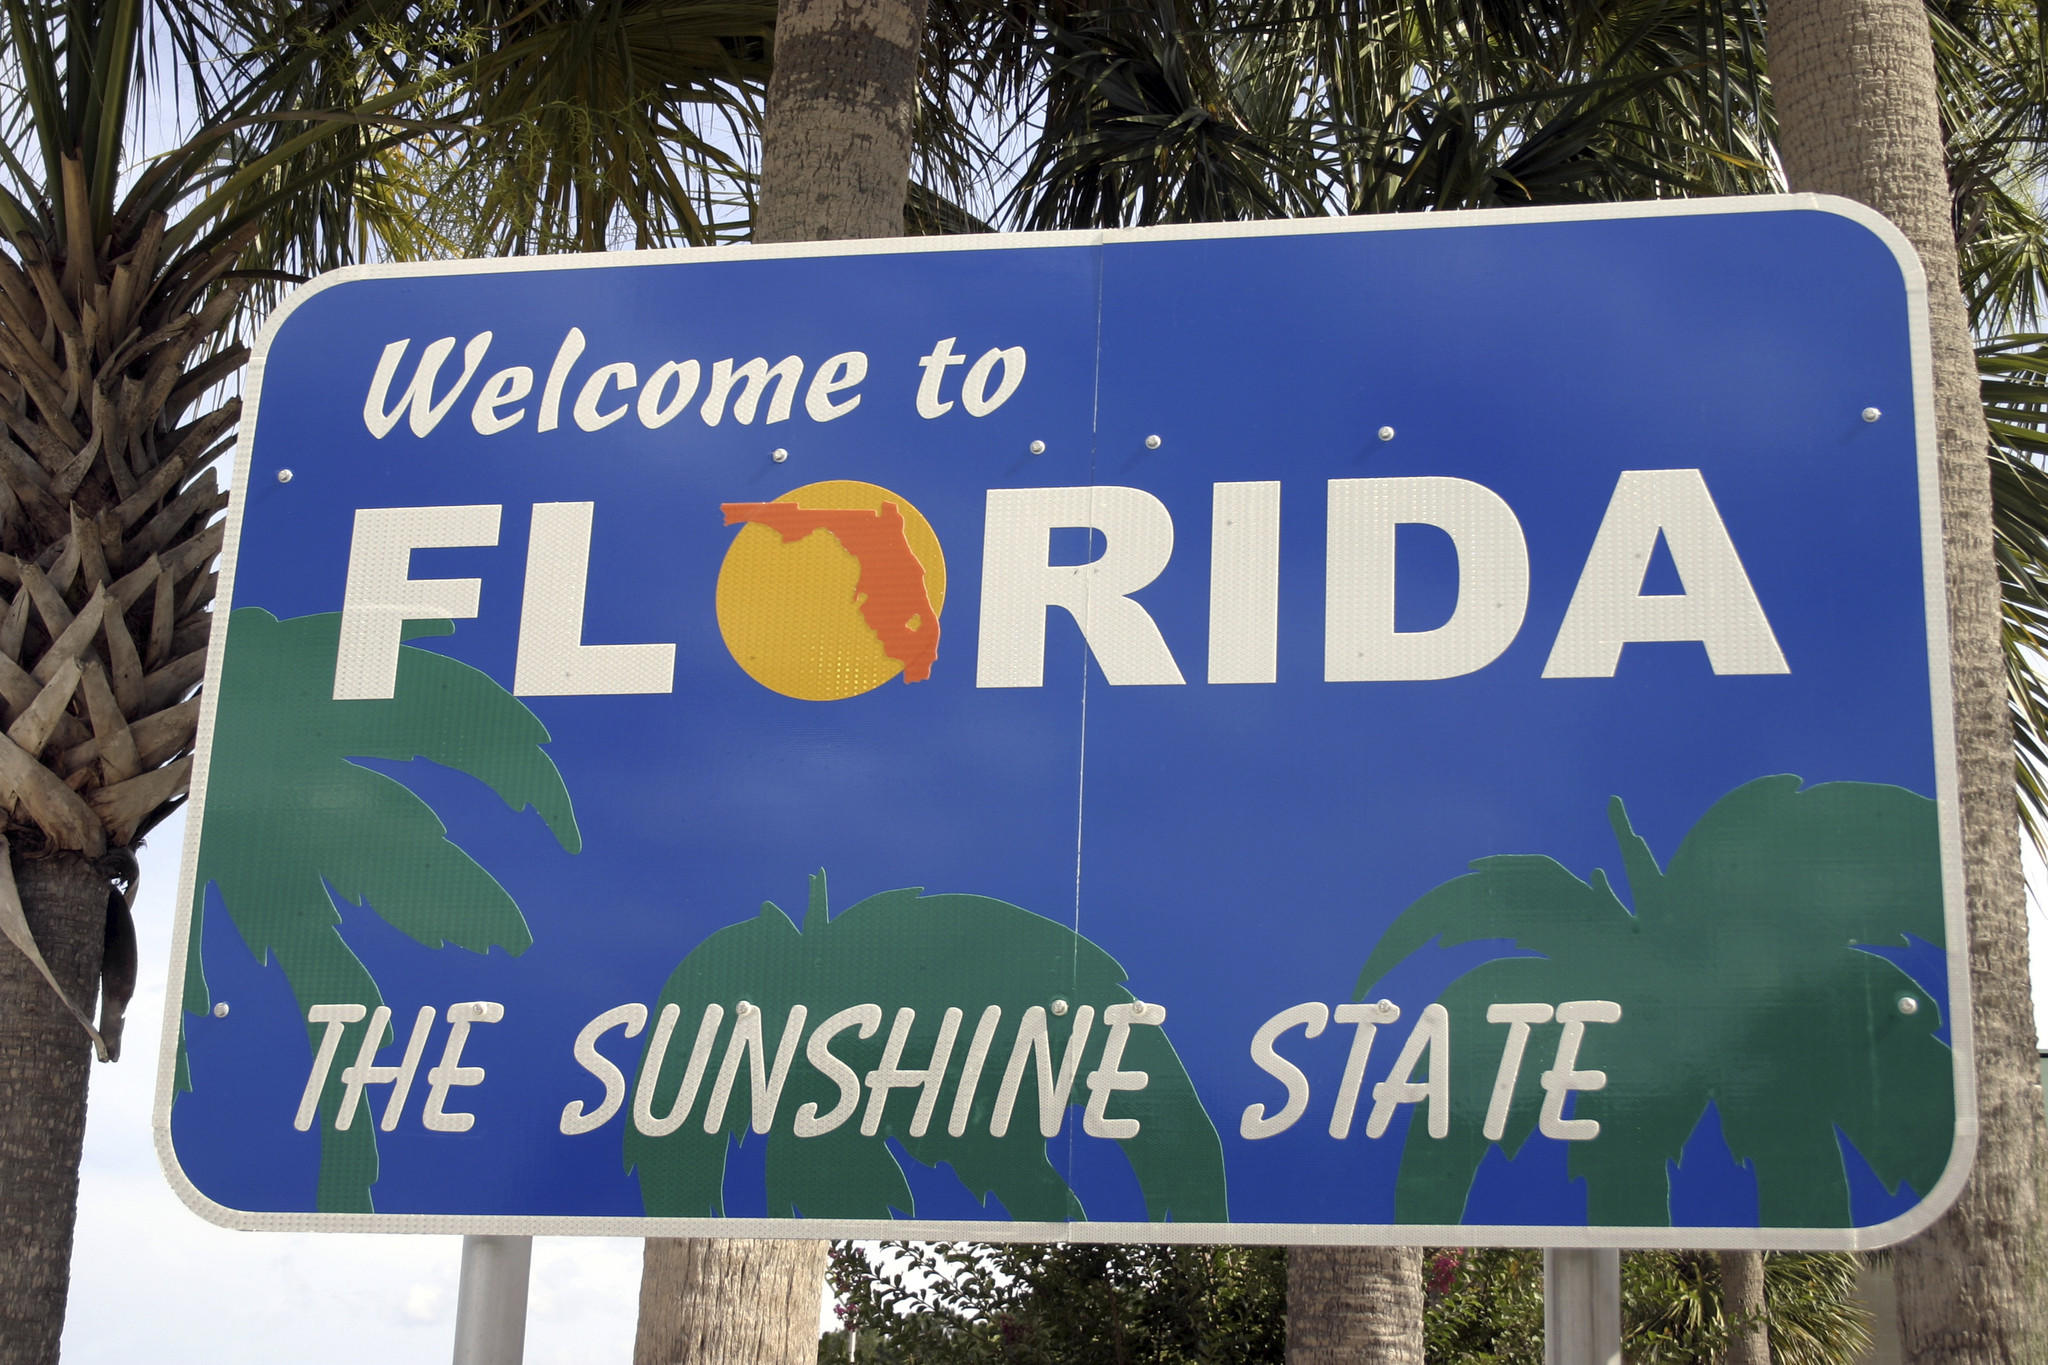 Spend 2 8 Million On New Florida Border Signs You Bet